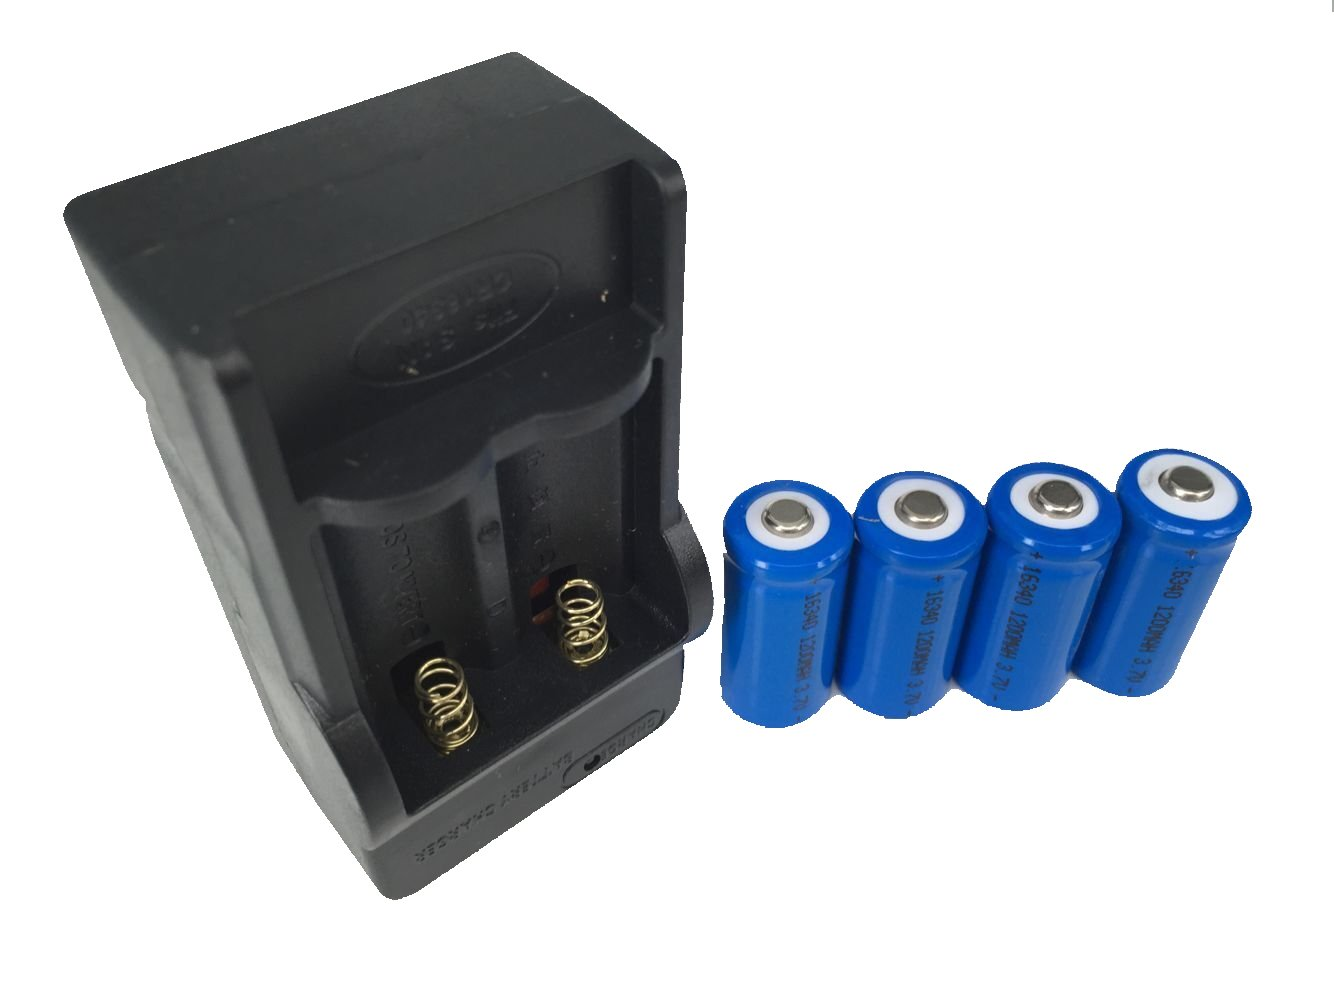 ON THE WAY®4pcs 1200mAh 16340 CR123A LR123A 3.6V Rechargeable Li-Ion Battery Plus Charger